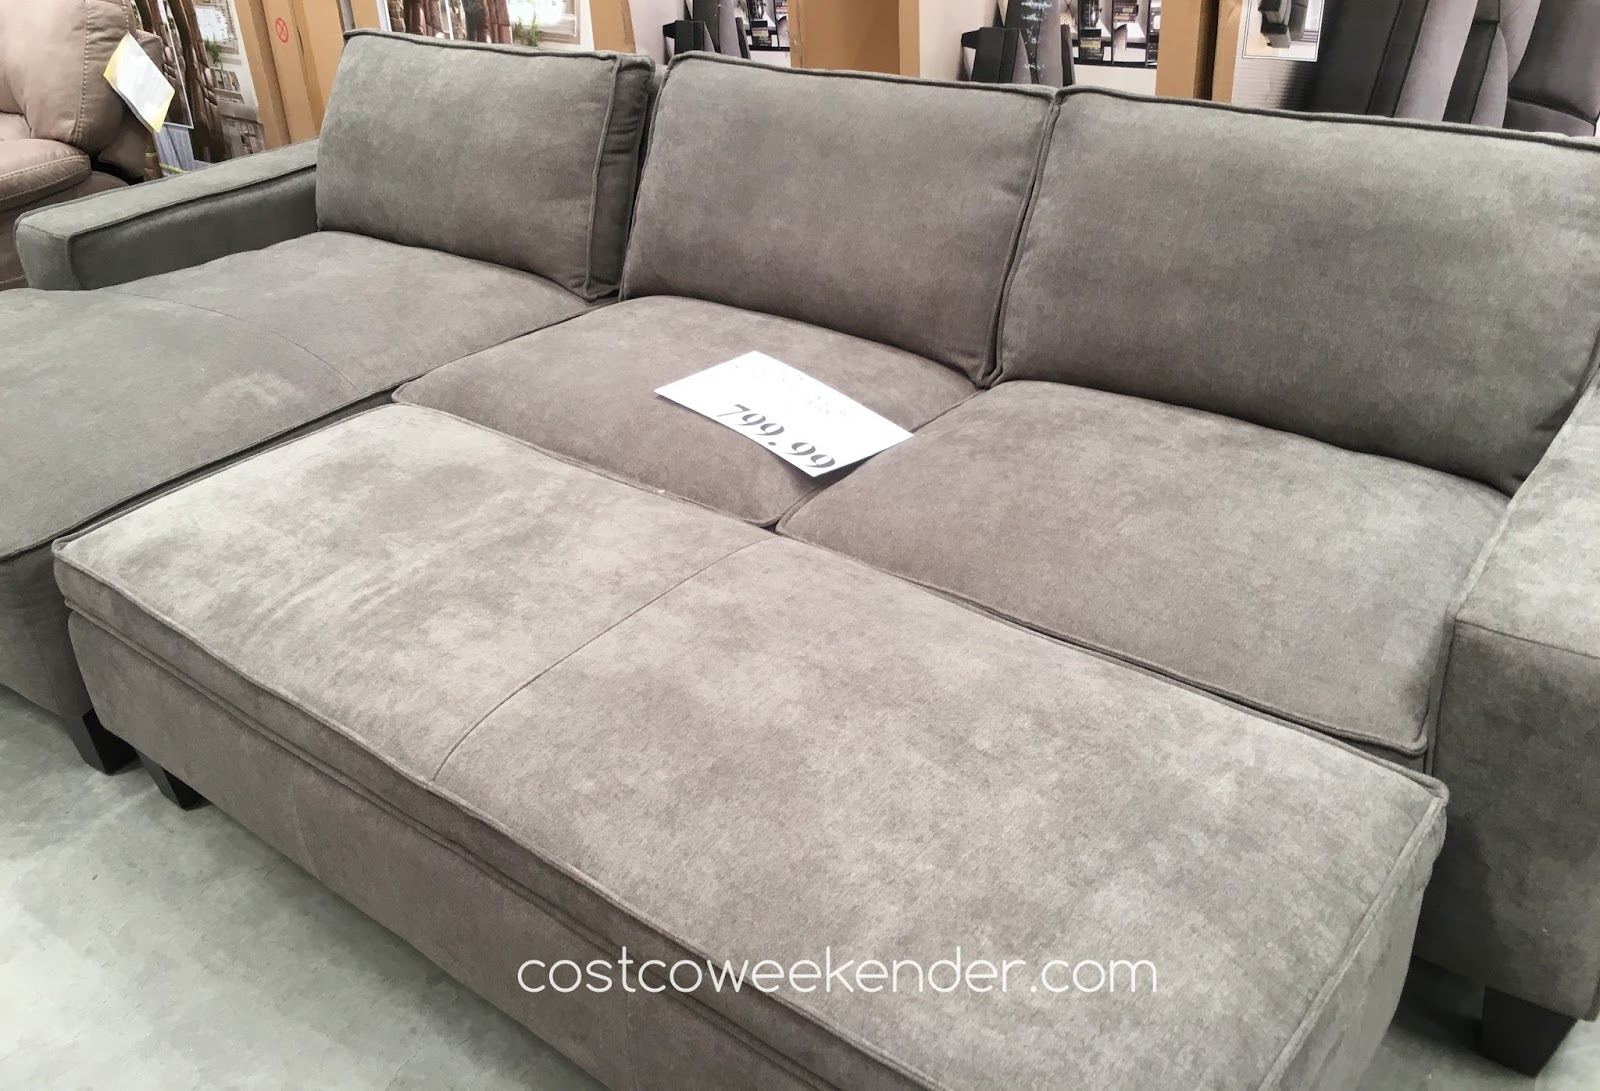 Chaise sofa with storage ottoman costco weekender for Chaise lounge costco